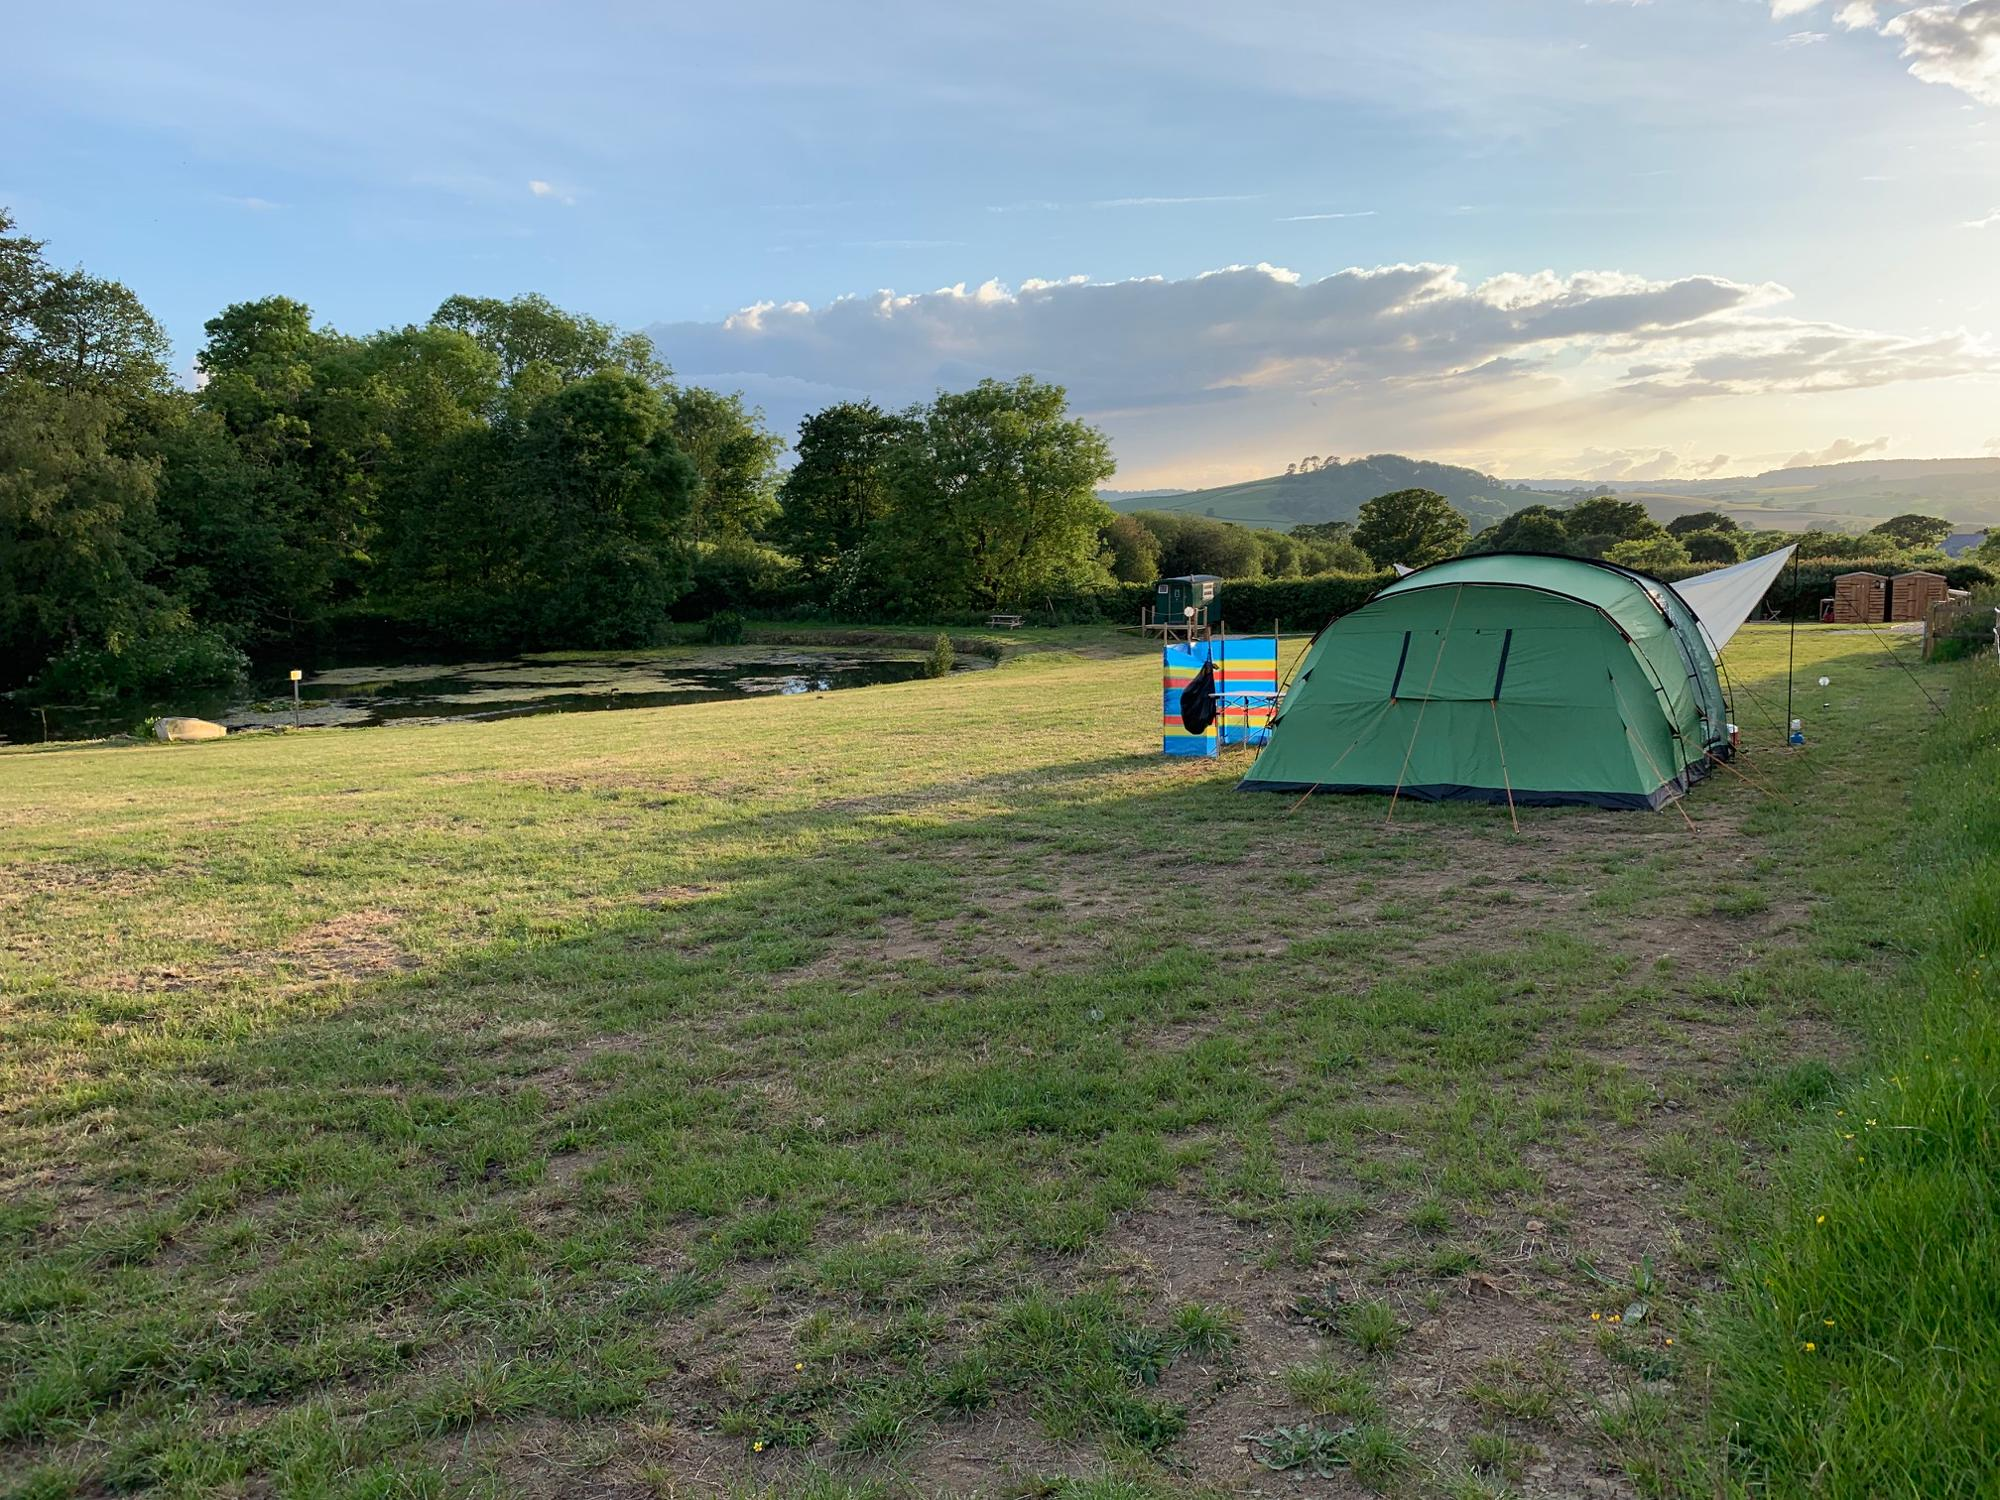 Campsites in South West England holidays at I Love This Campsite